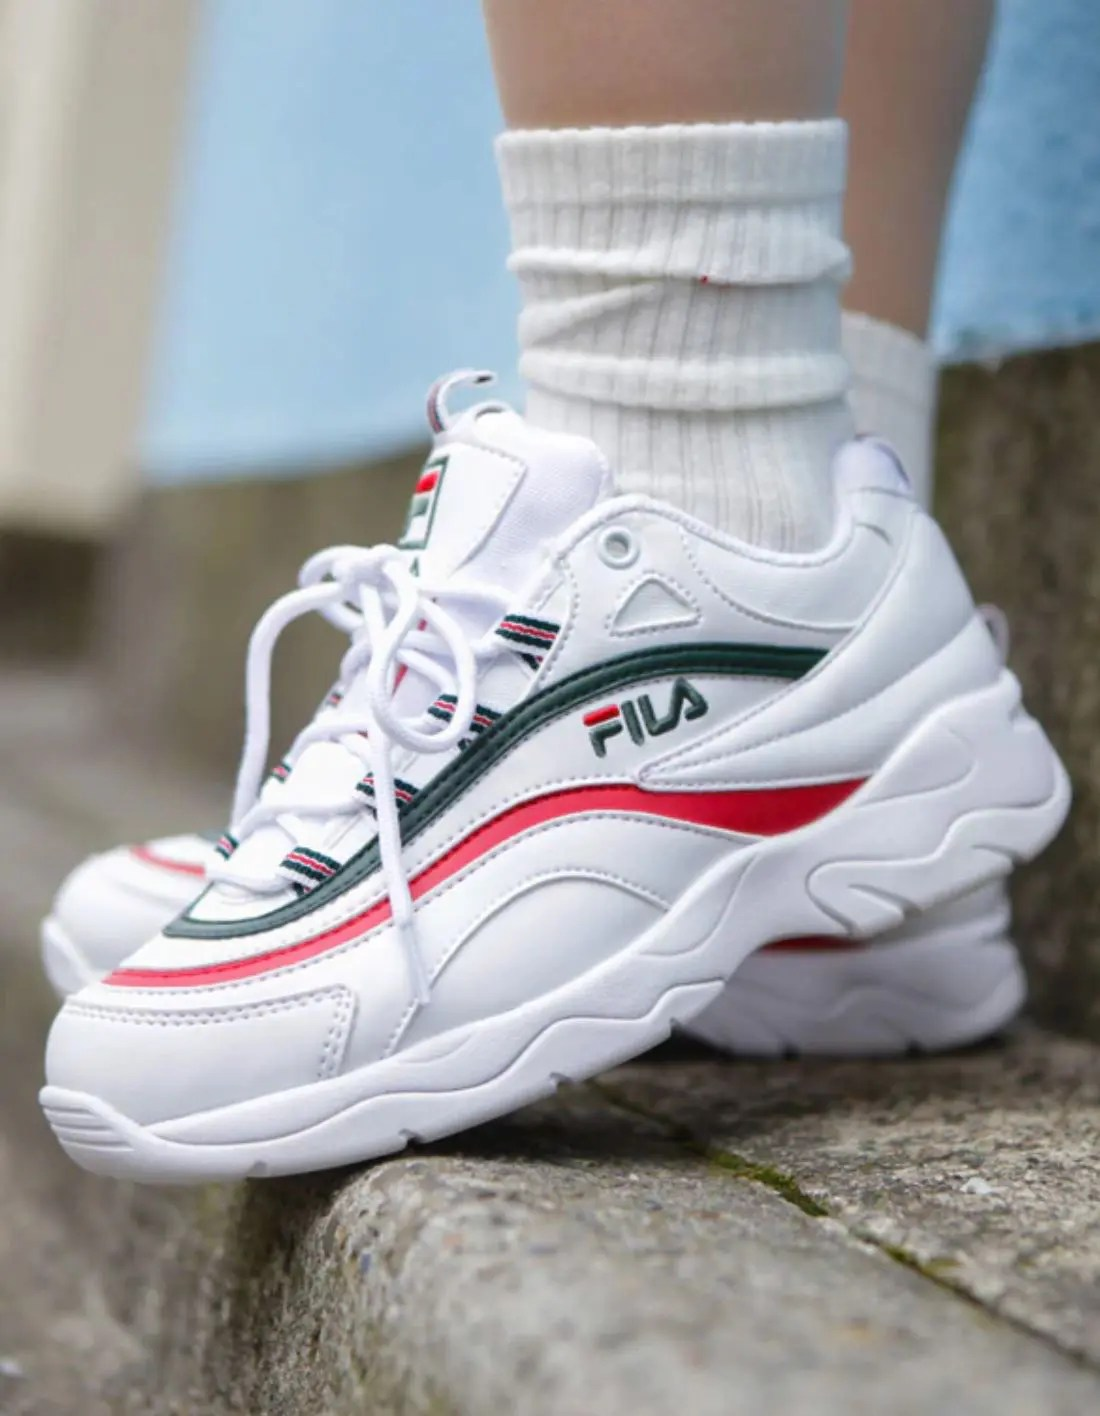 FILA RAY WH SYCA FR atmos exclusive-02